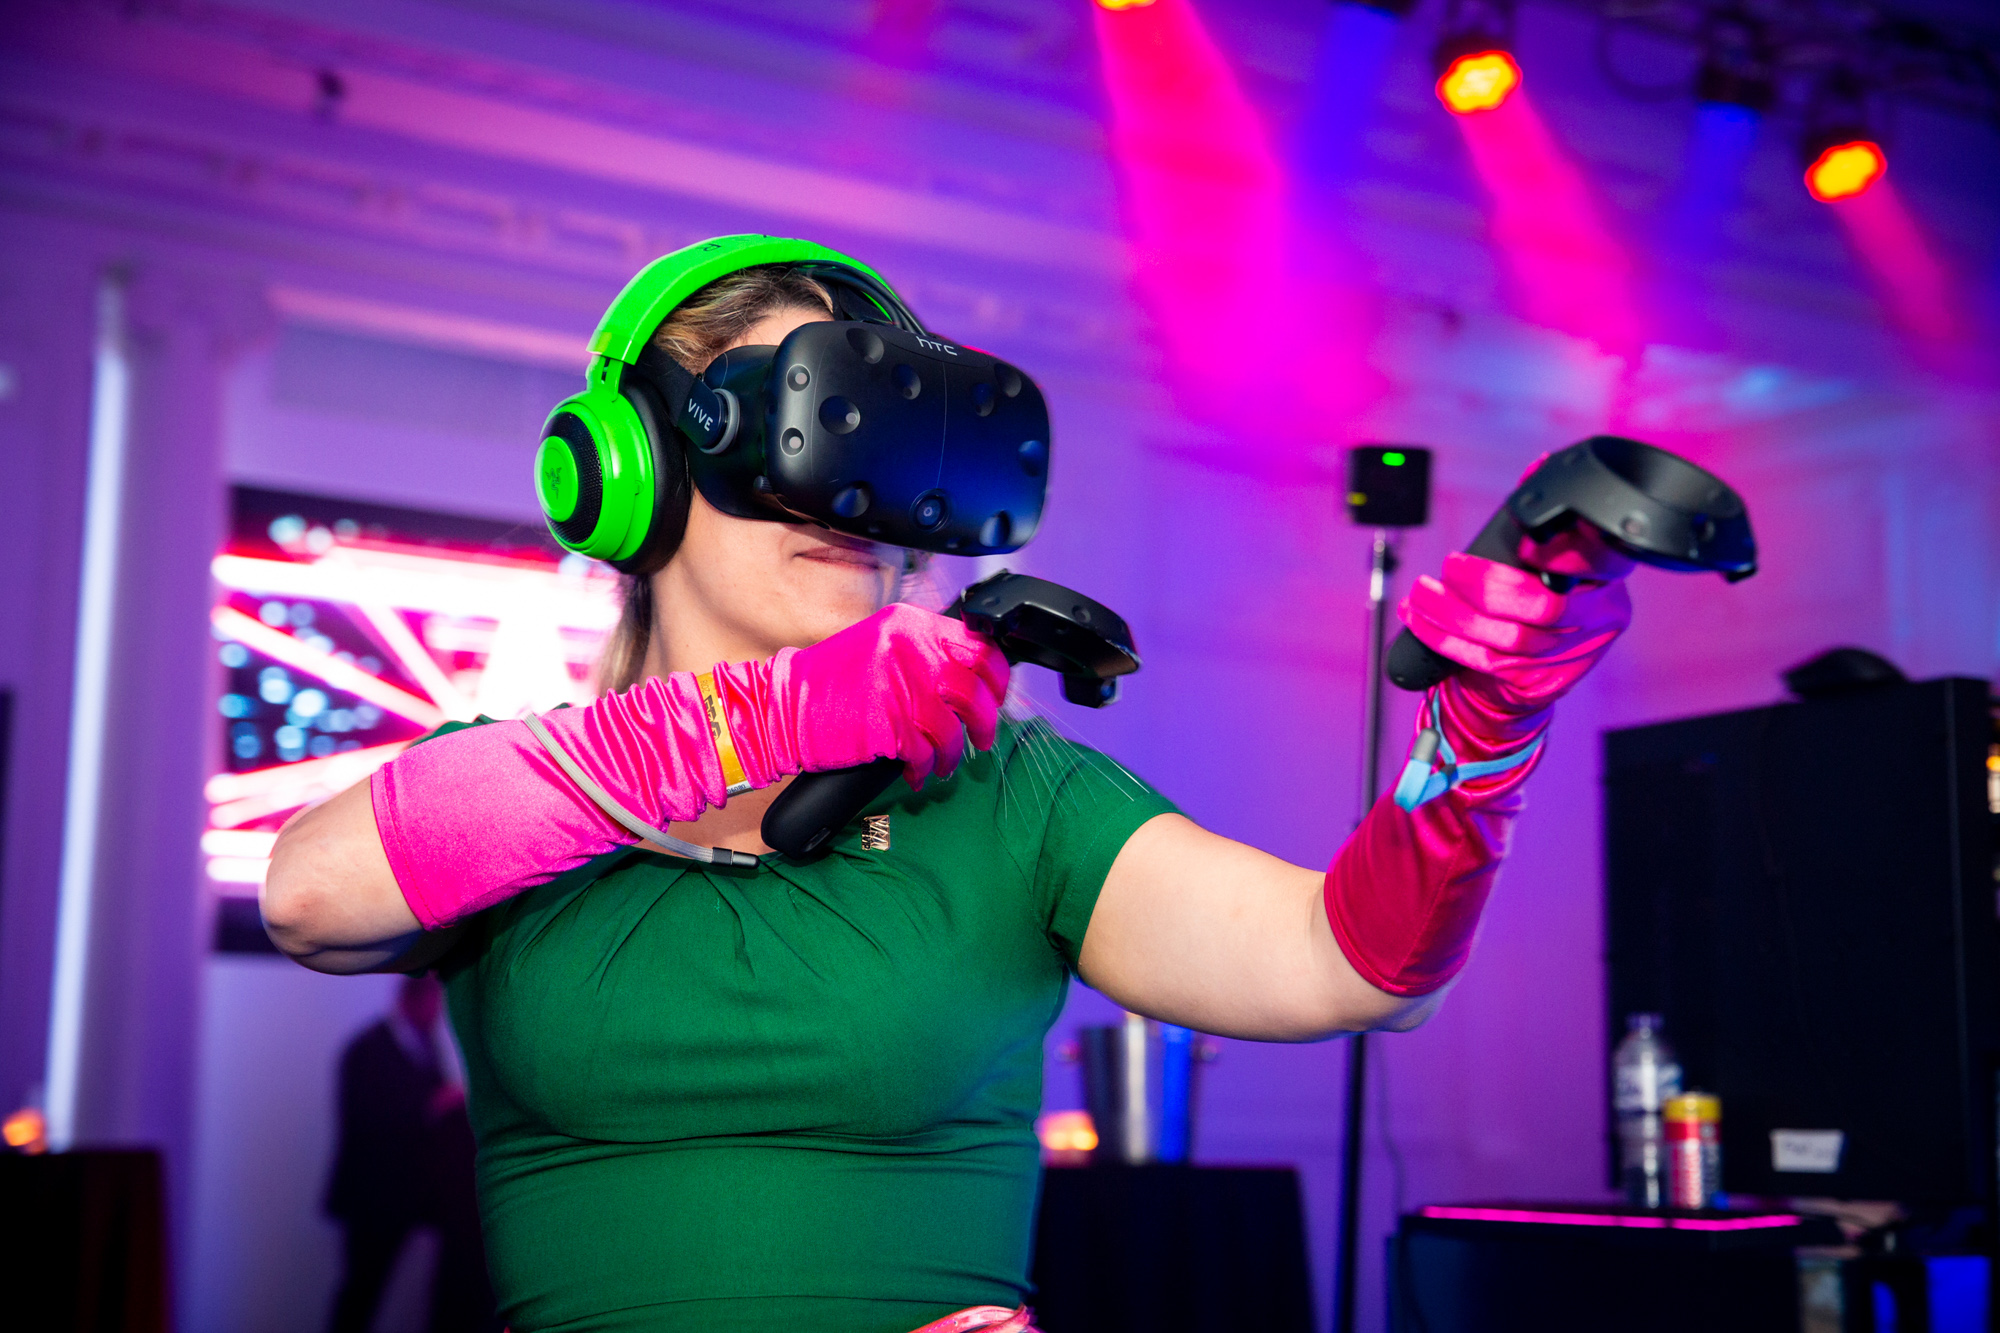 Raccoon_London_VR_Awards_2018_Event_Photography-28.jpg